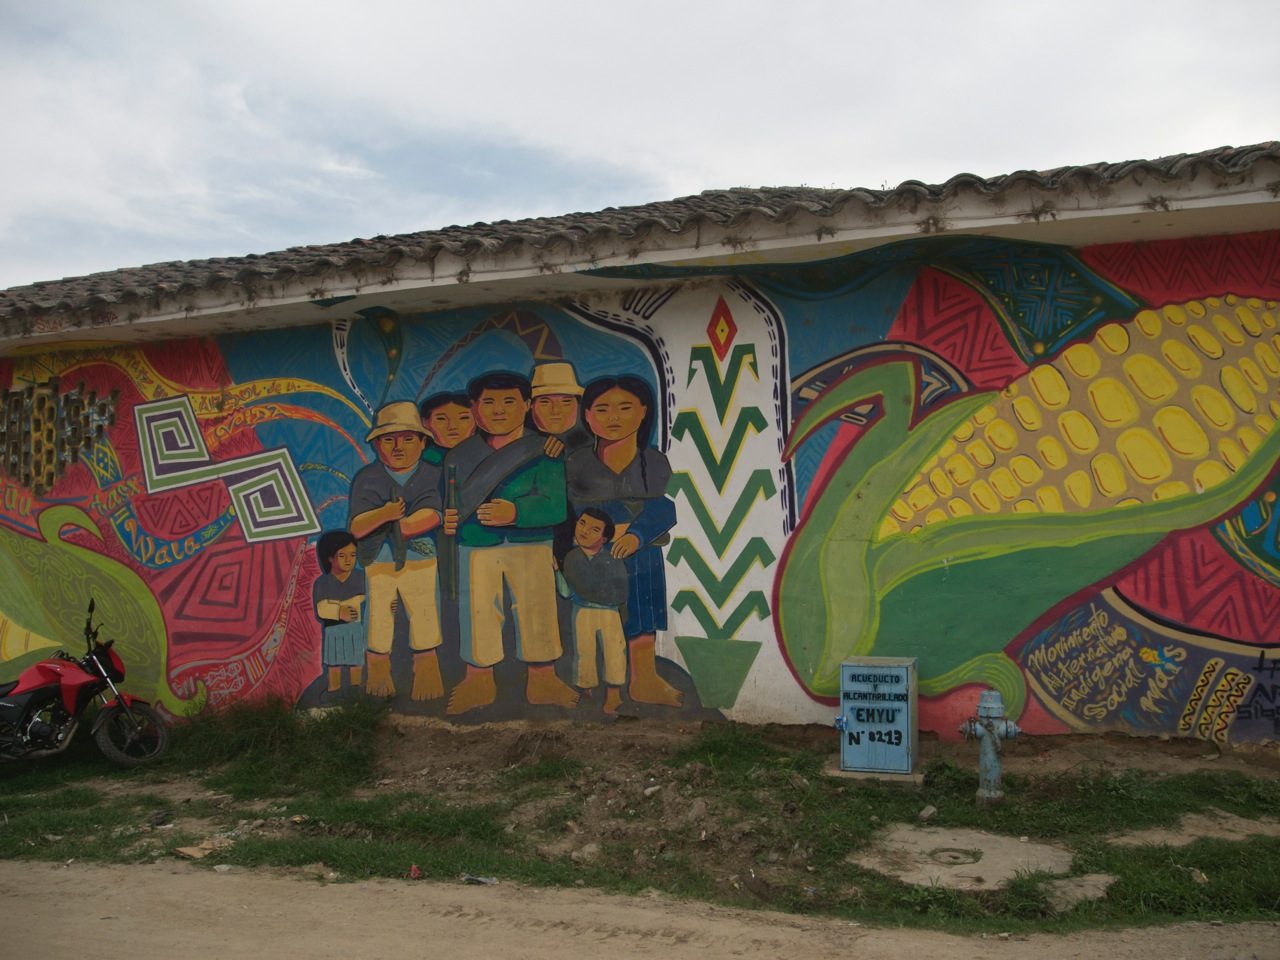 Murals in the town of Toribio, Colombia image